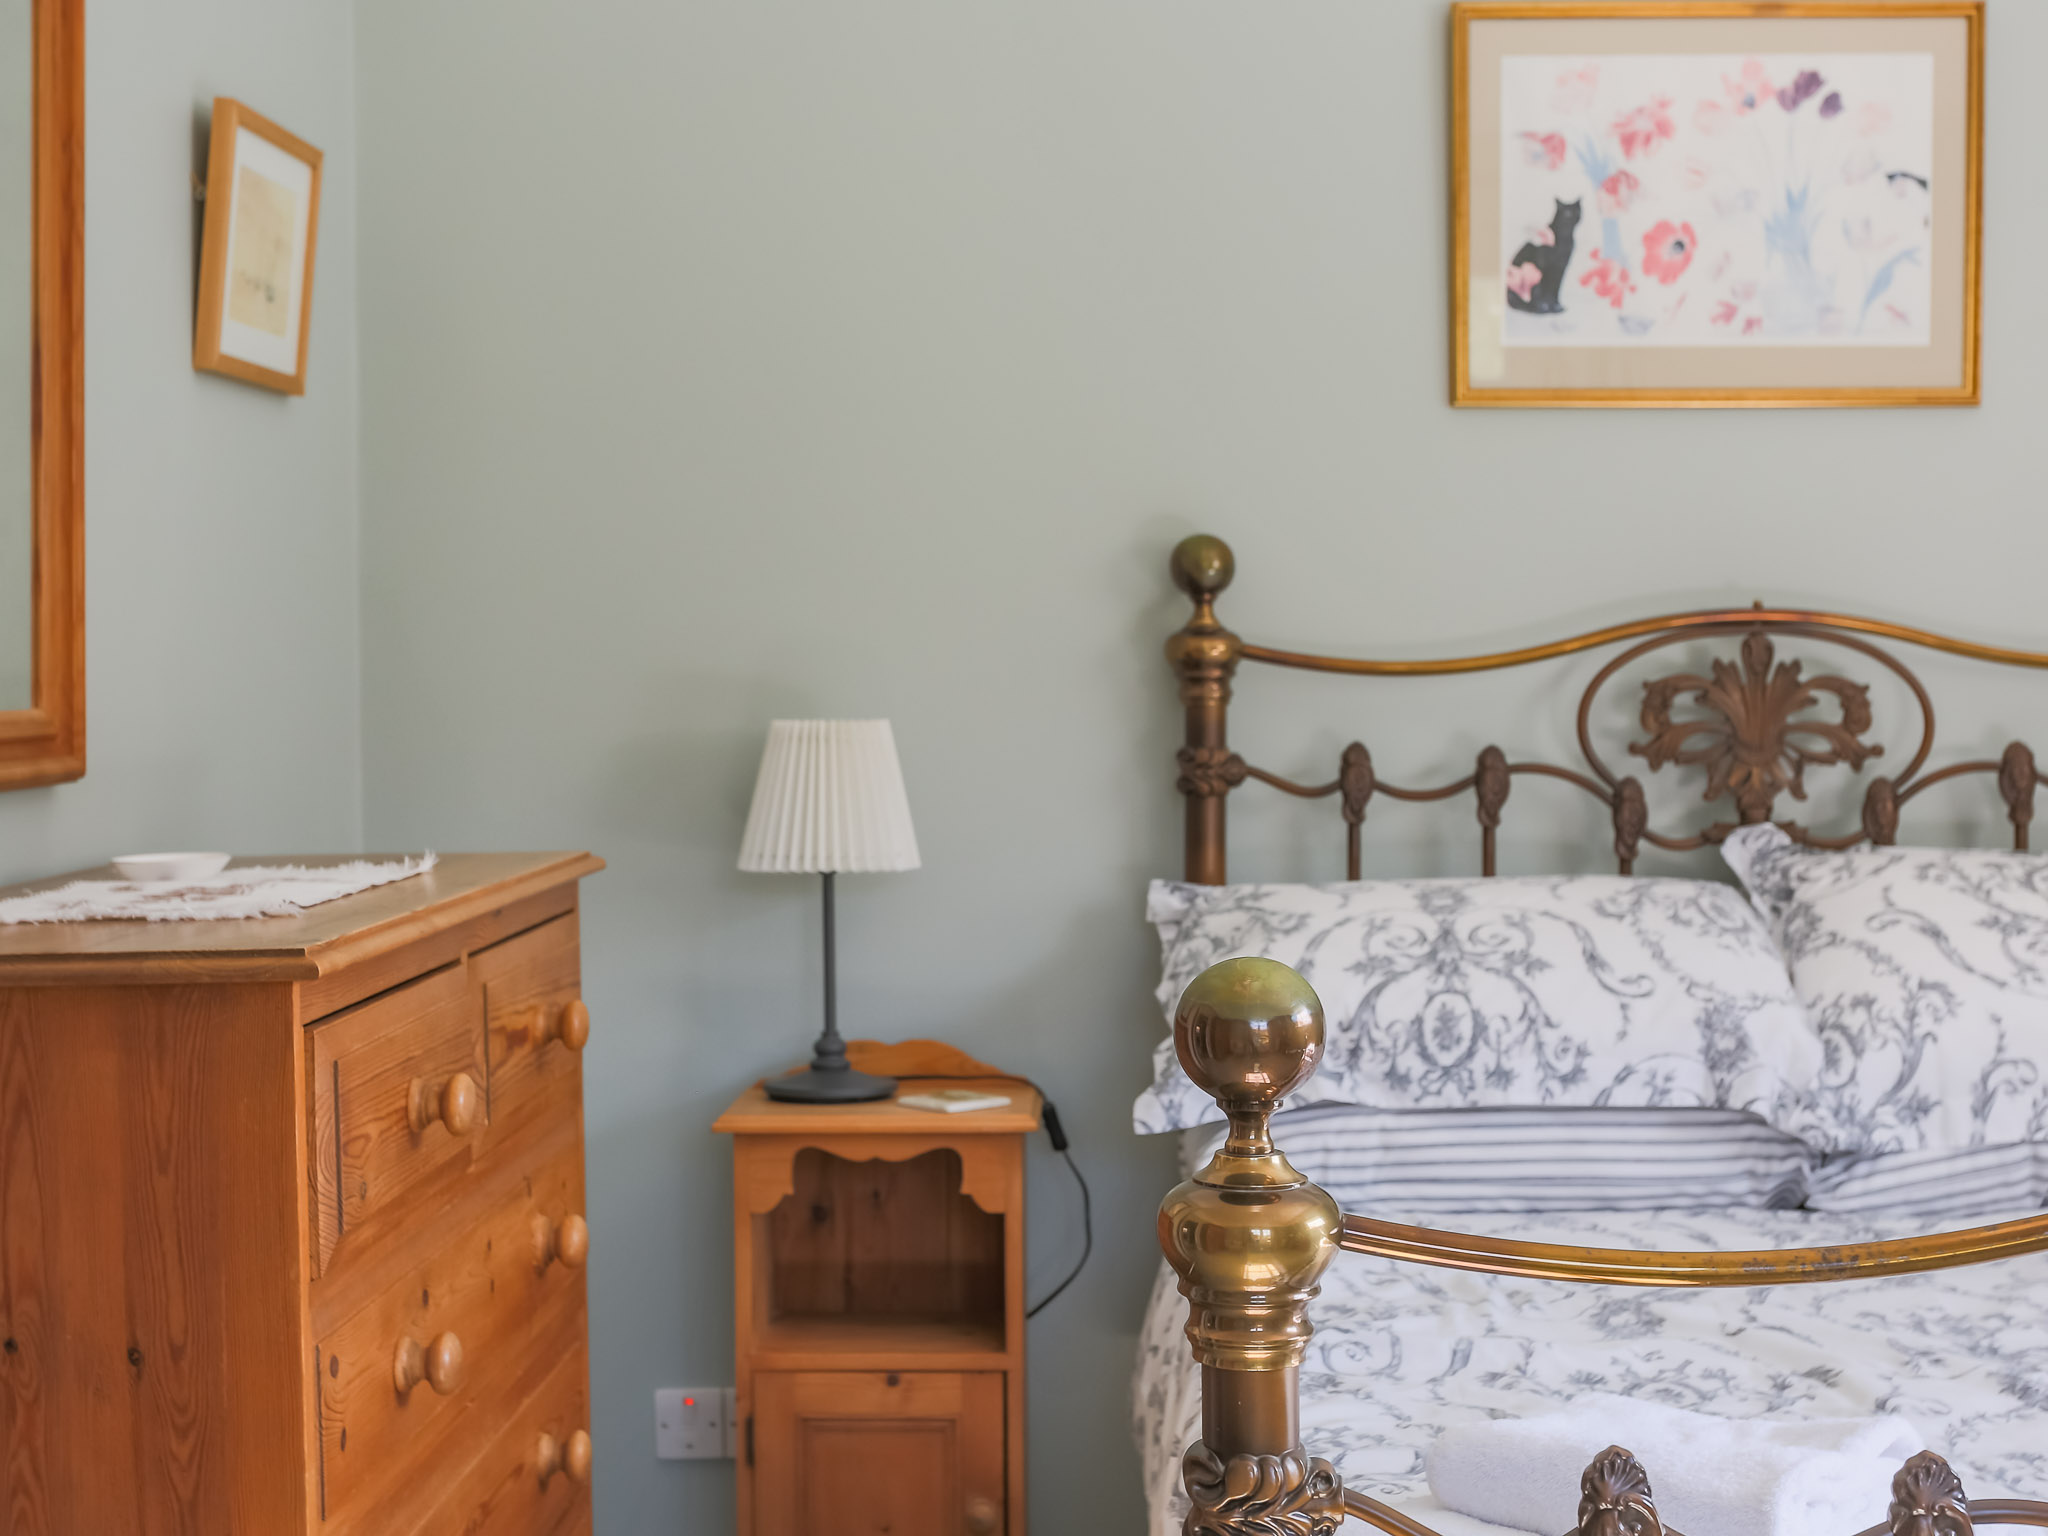 The room is tastefully and comfortably furnished